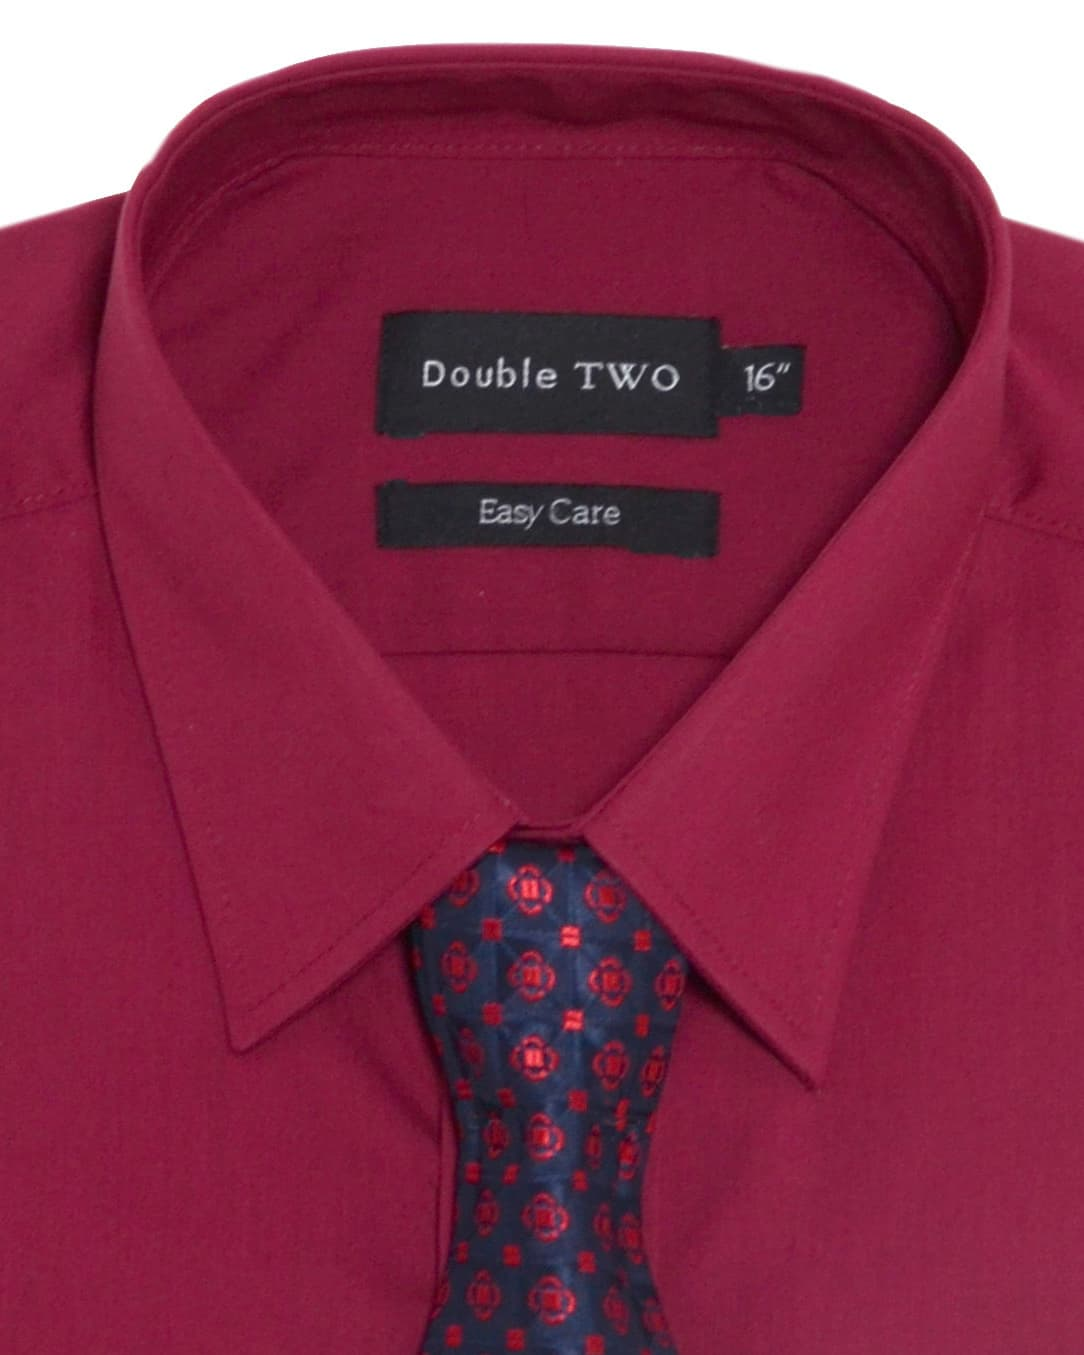 Double TWO | Plain Burgundy Formal Shirt and Tie Set ... - photo#28